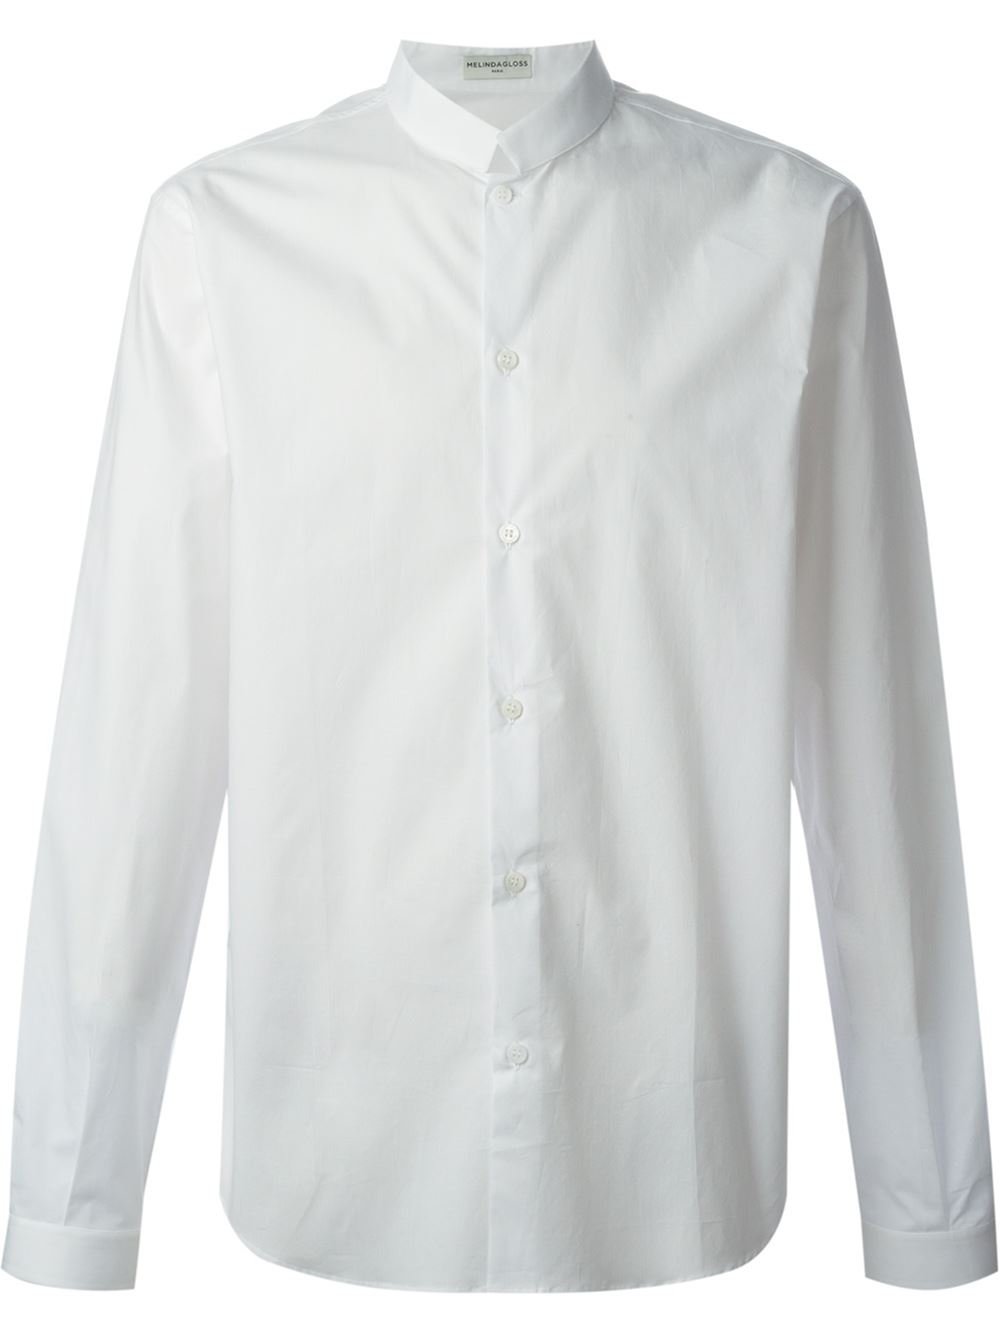 Stand Collar Shirts Designs : Melindagloss stand up collar shirt in white for men lyst